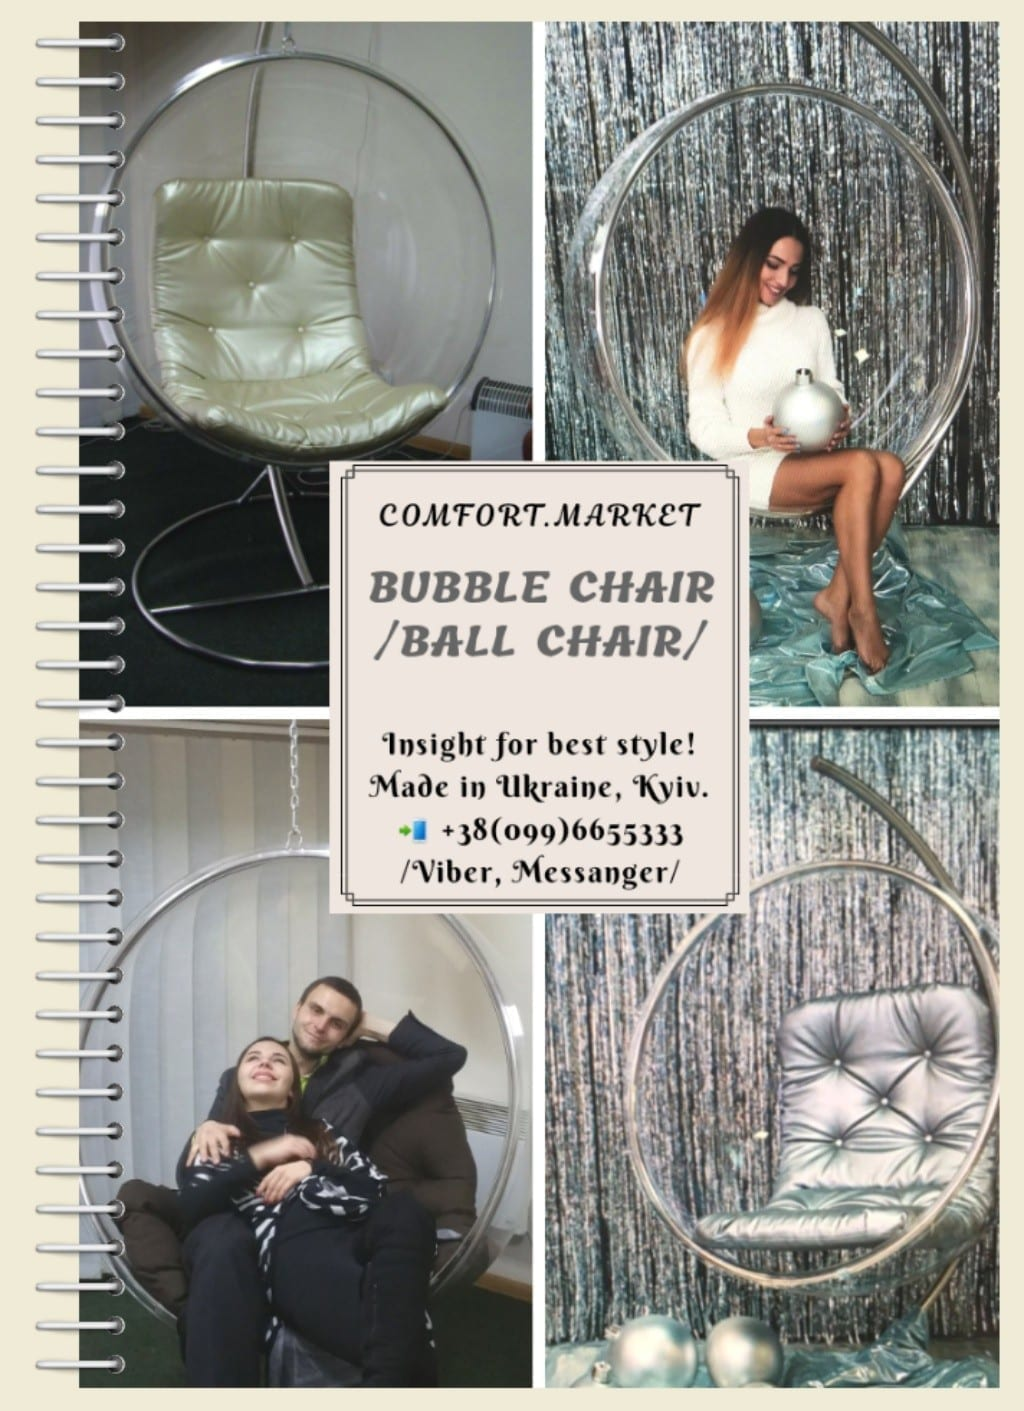 Bubble chair (ball chair) - furniture by Comfort Market - photos